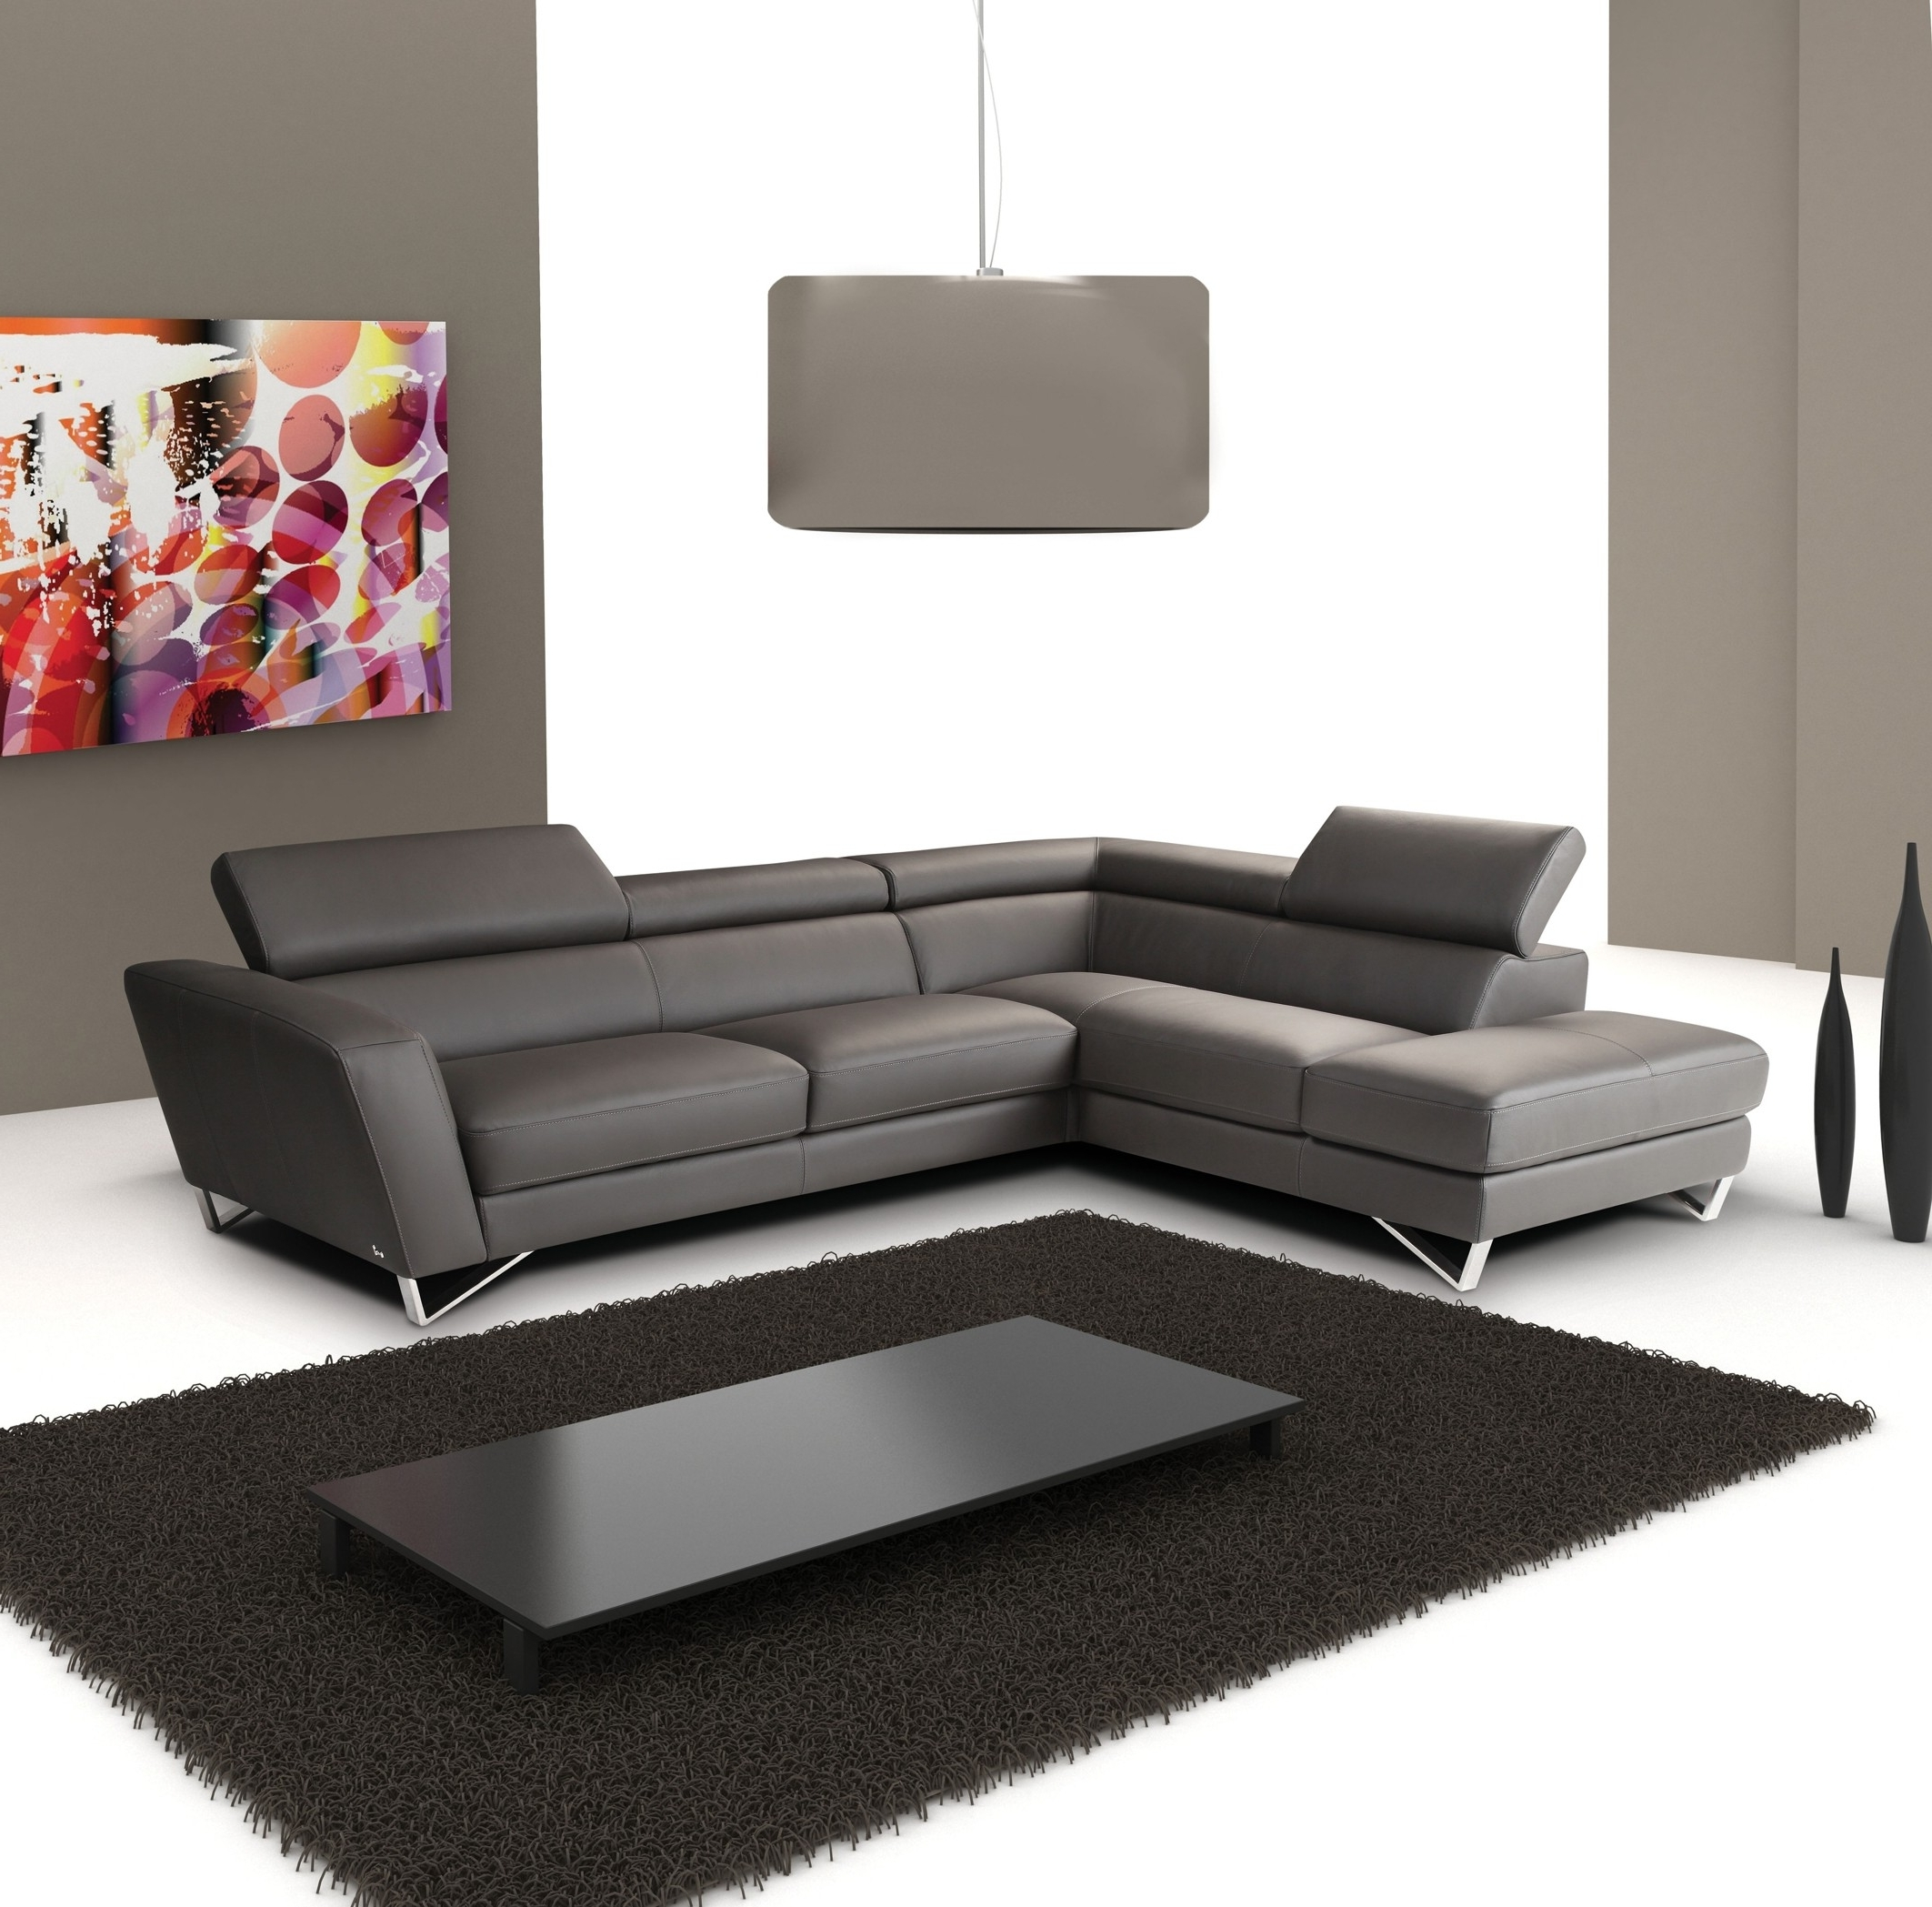 Uncategorized. Attractive Cheap Contemporary Furniture: Modern Throughout Well Known Contemporary Sofa Chairs (Gallery 9 of 20)